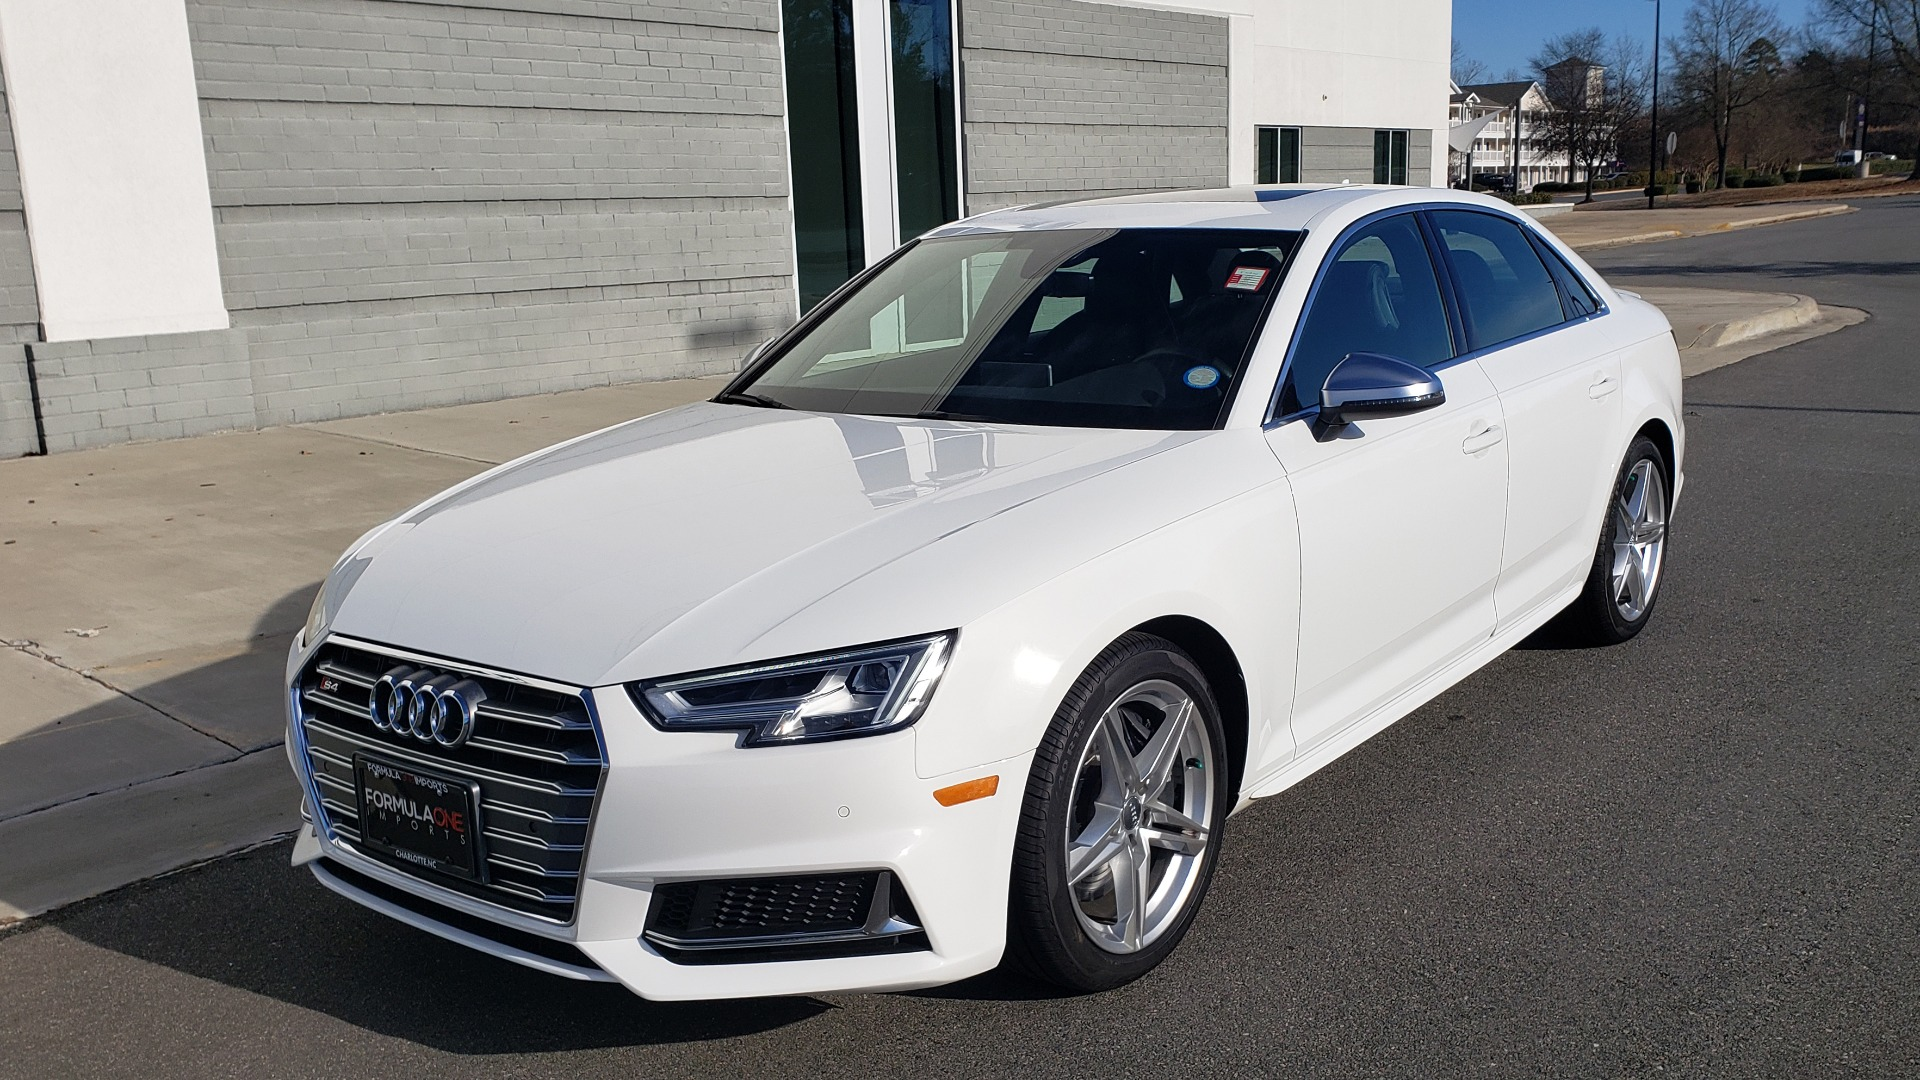 Used 2018 Audi S4 PREMIUM PLUS / TECH PKG / NAV / CLD WTHR / REARVIEW for sale Sold at Formula Imports in Charlotte NC 28227 3